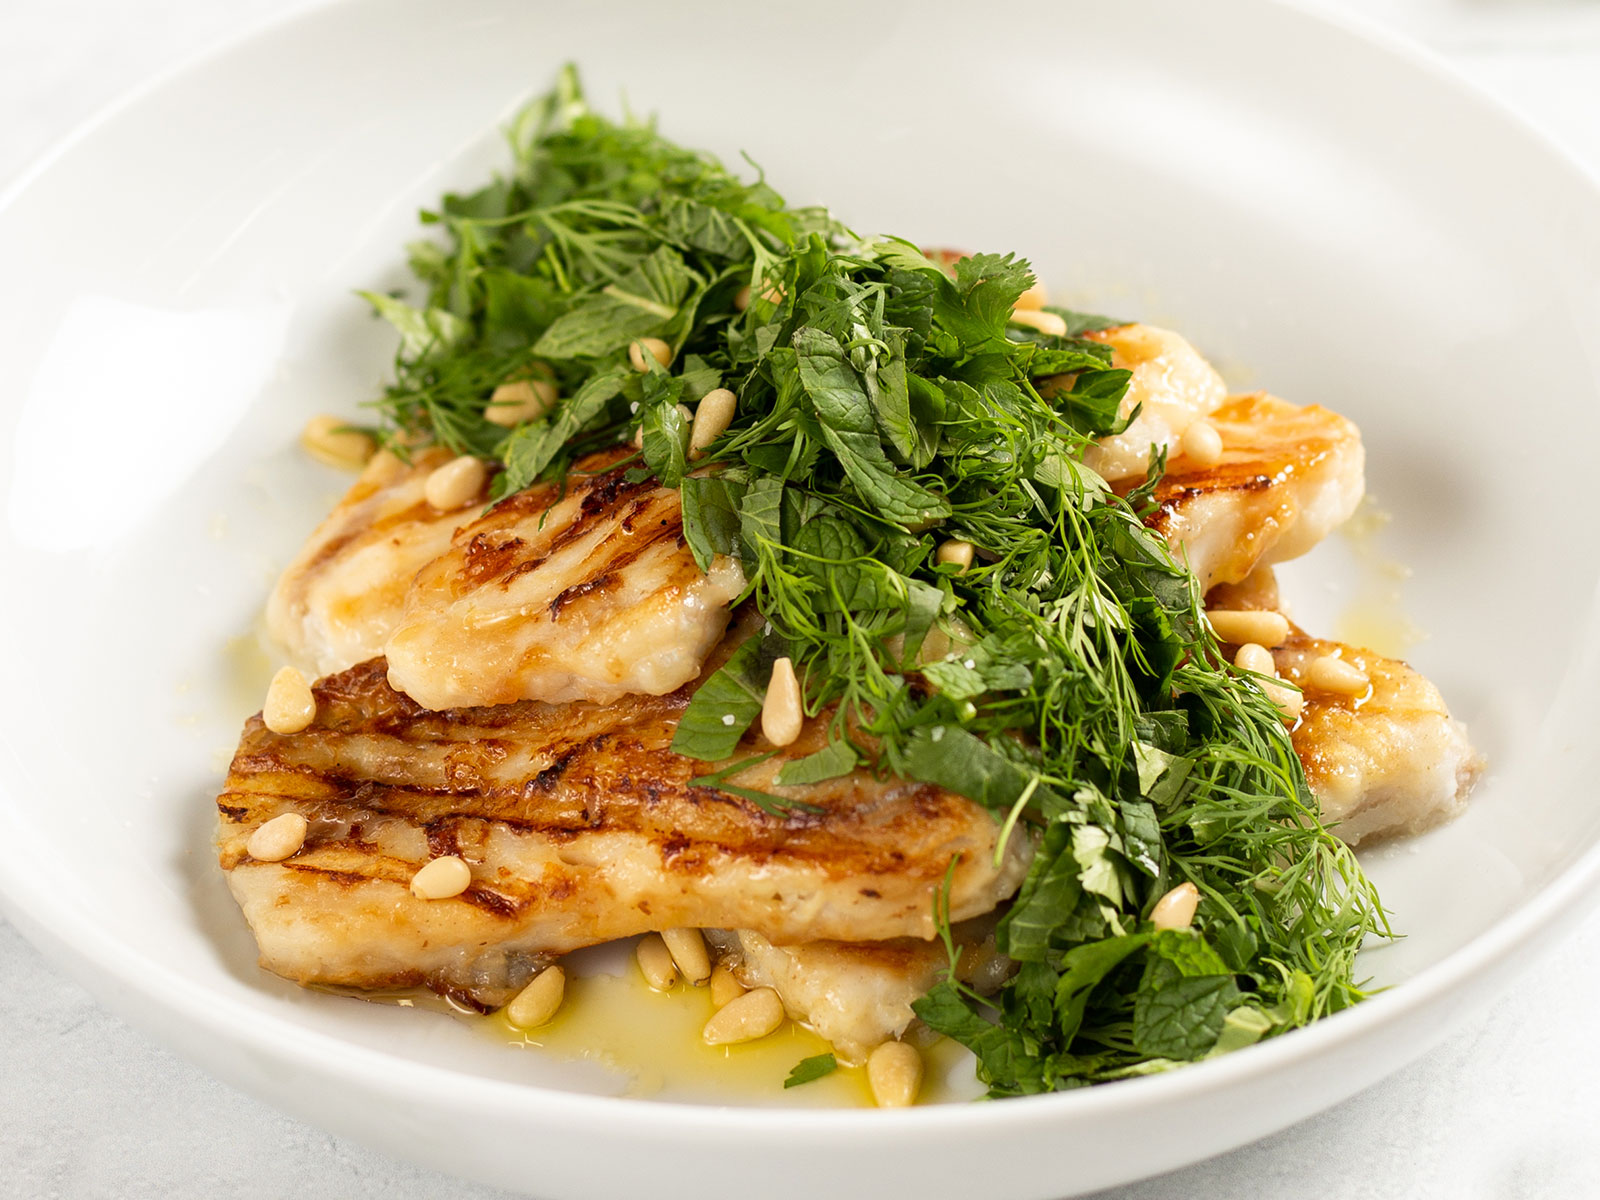 Simple Grilled Alaskan Pollock Fillets with Herbs